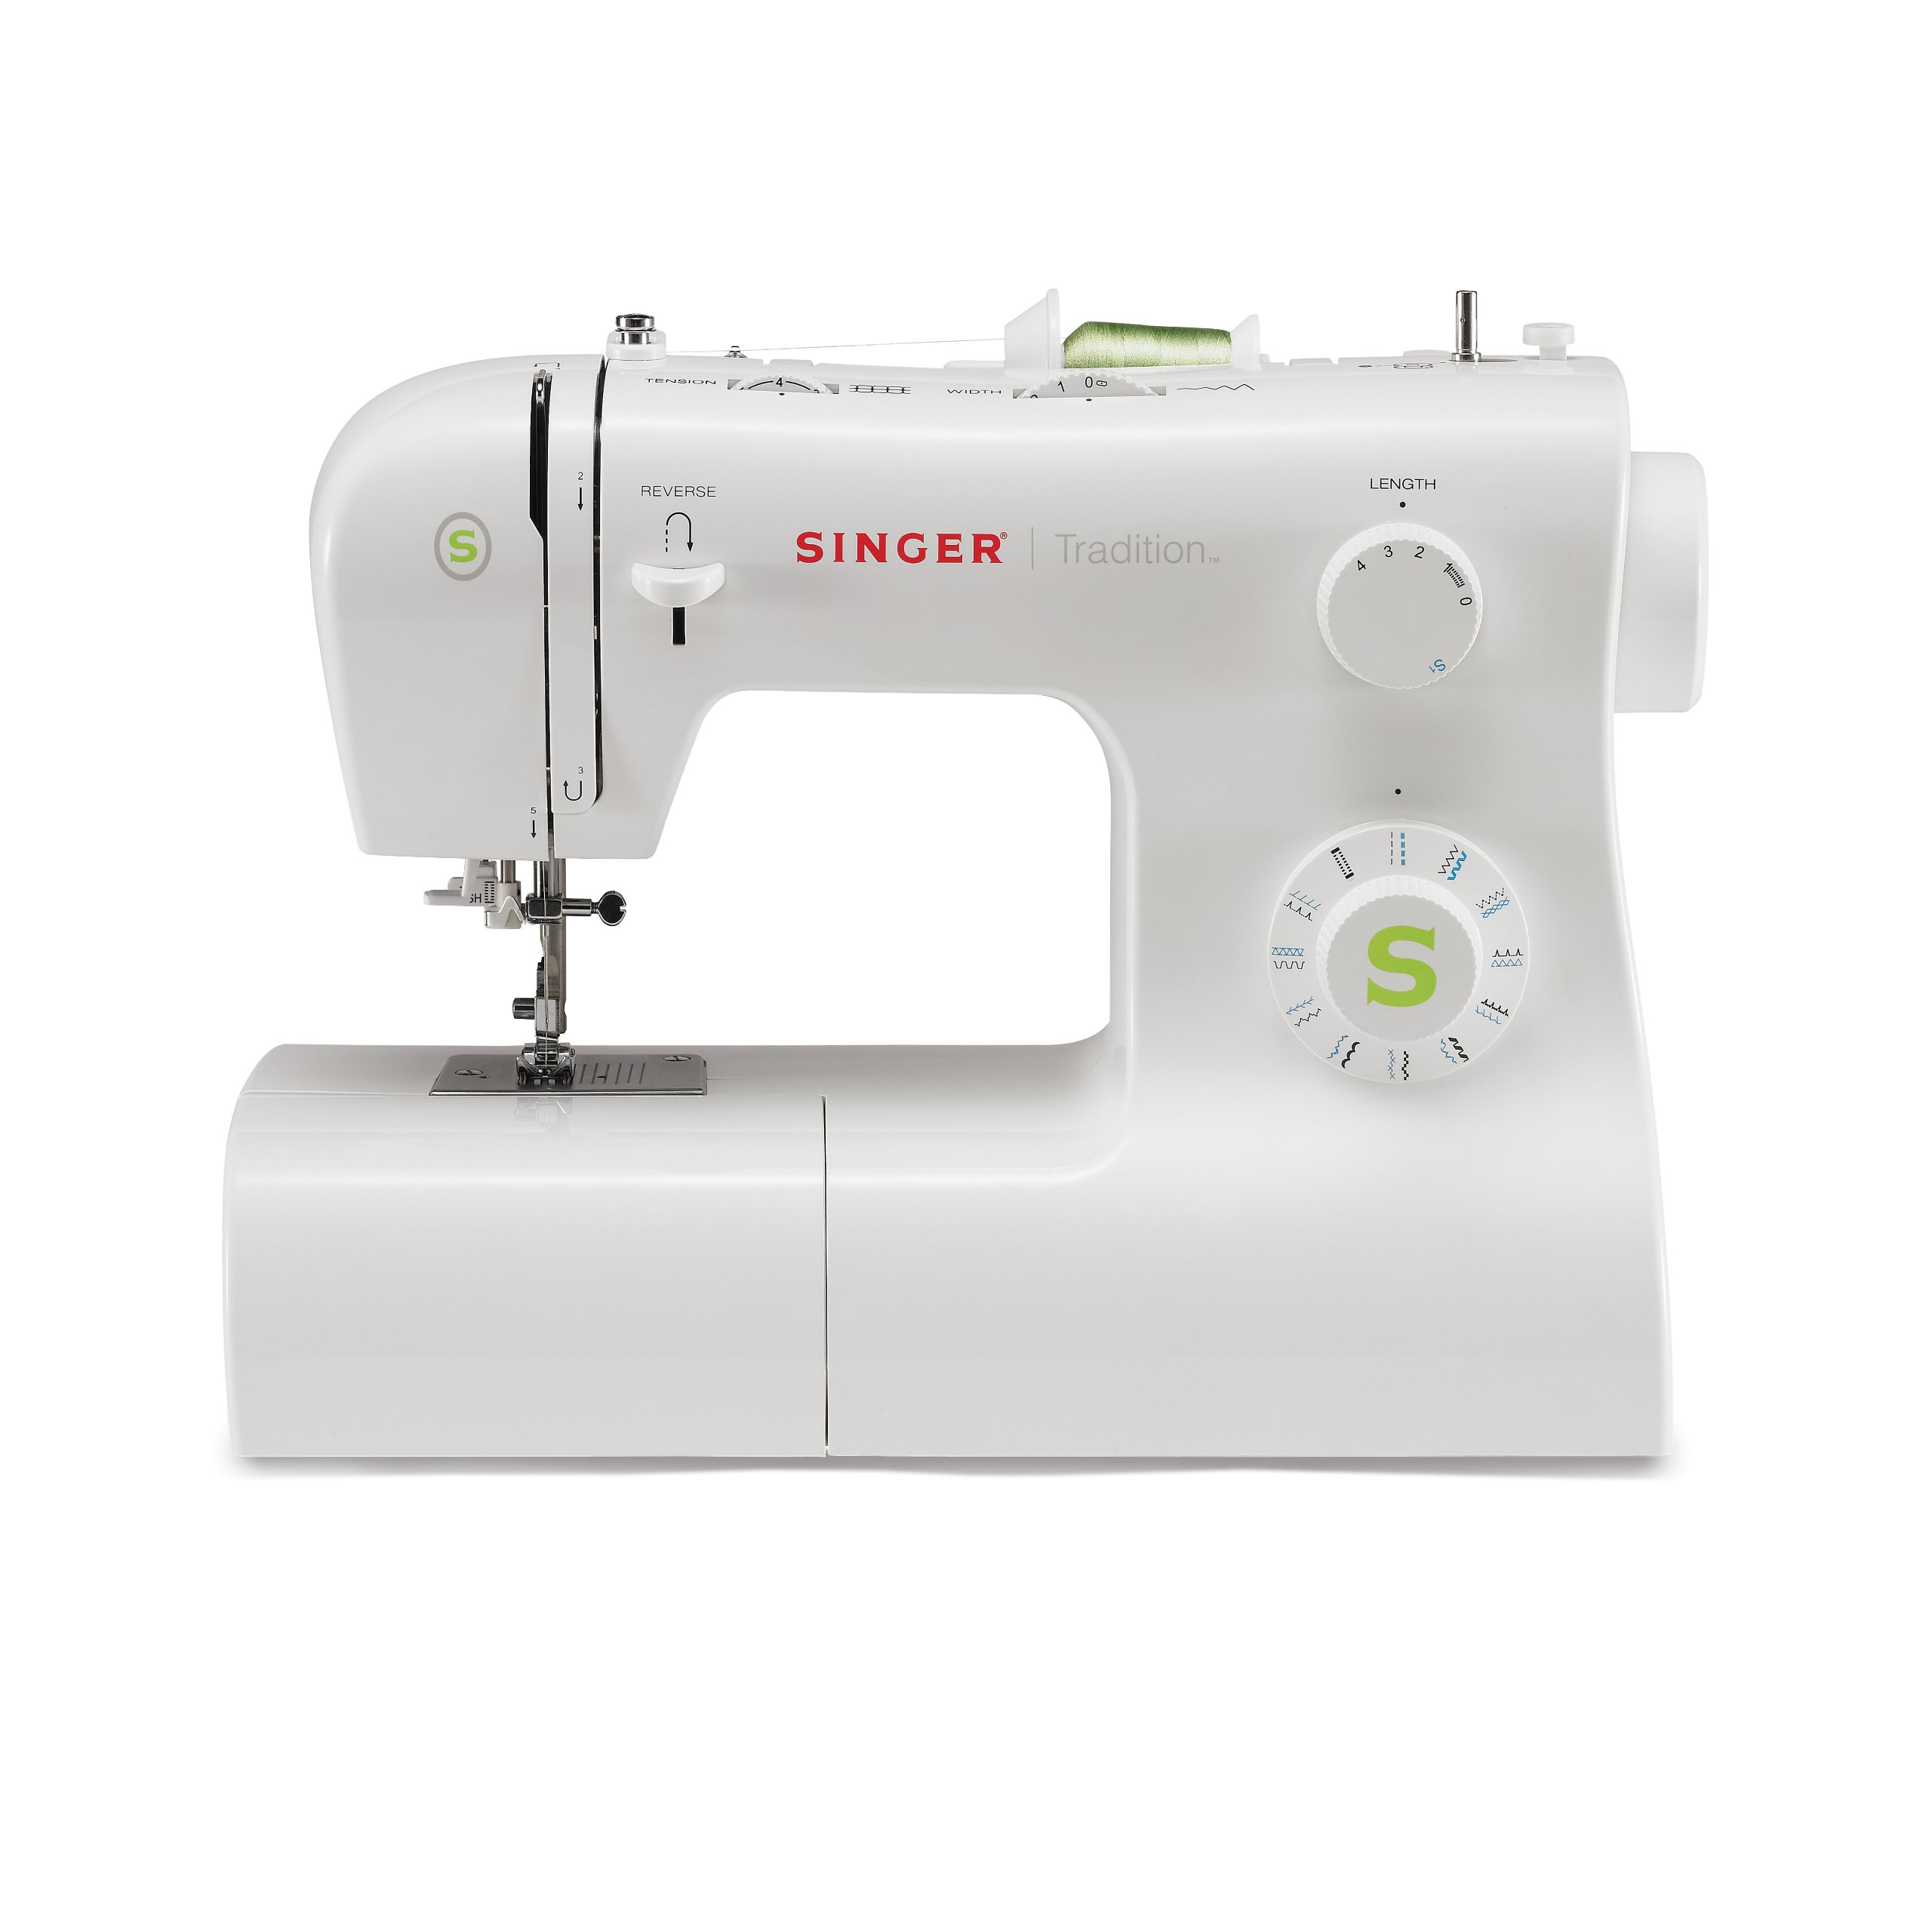 SINGER | Tradition 2277 Sewing Machine including 23 Built-In Stitches, Automatic Needle Threader, Snap-On Presser Feet, Automatic Tension, perfect for sewing all types of fabrics with ease